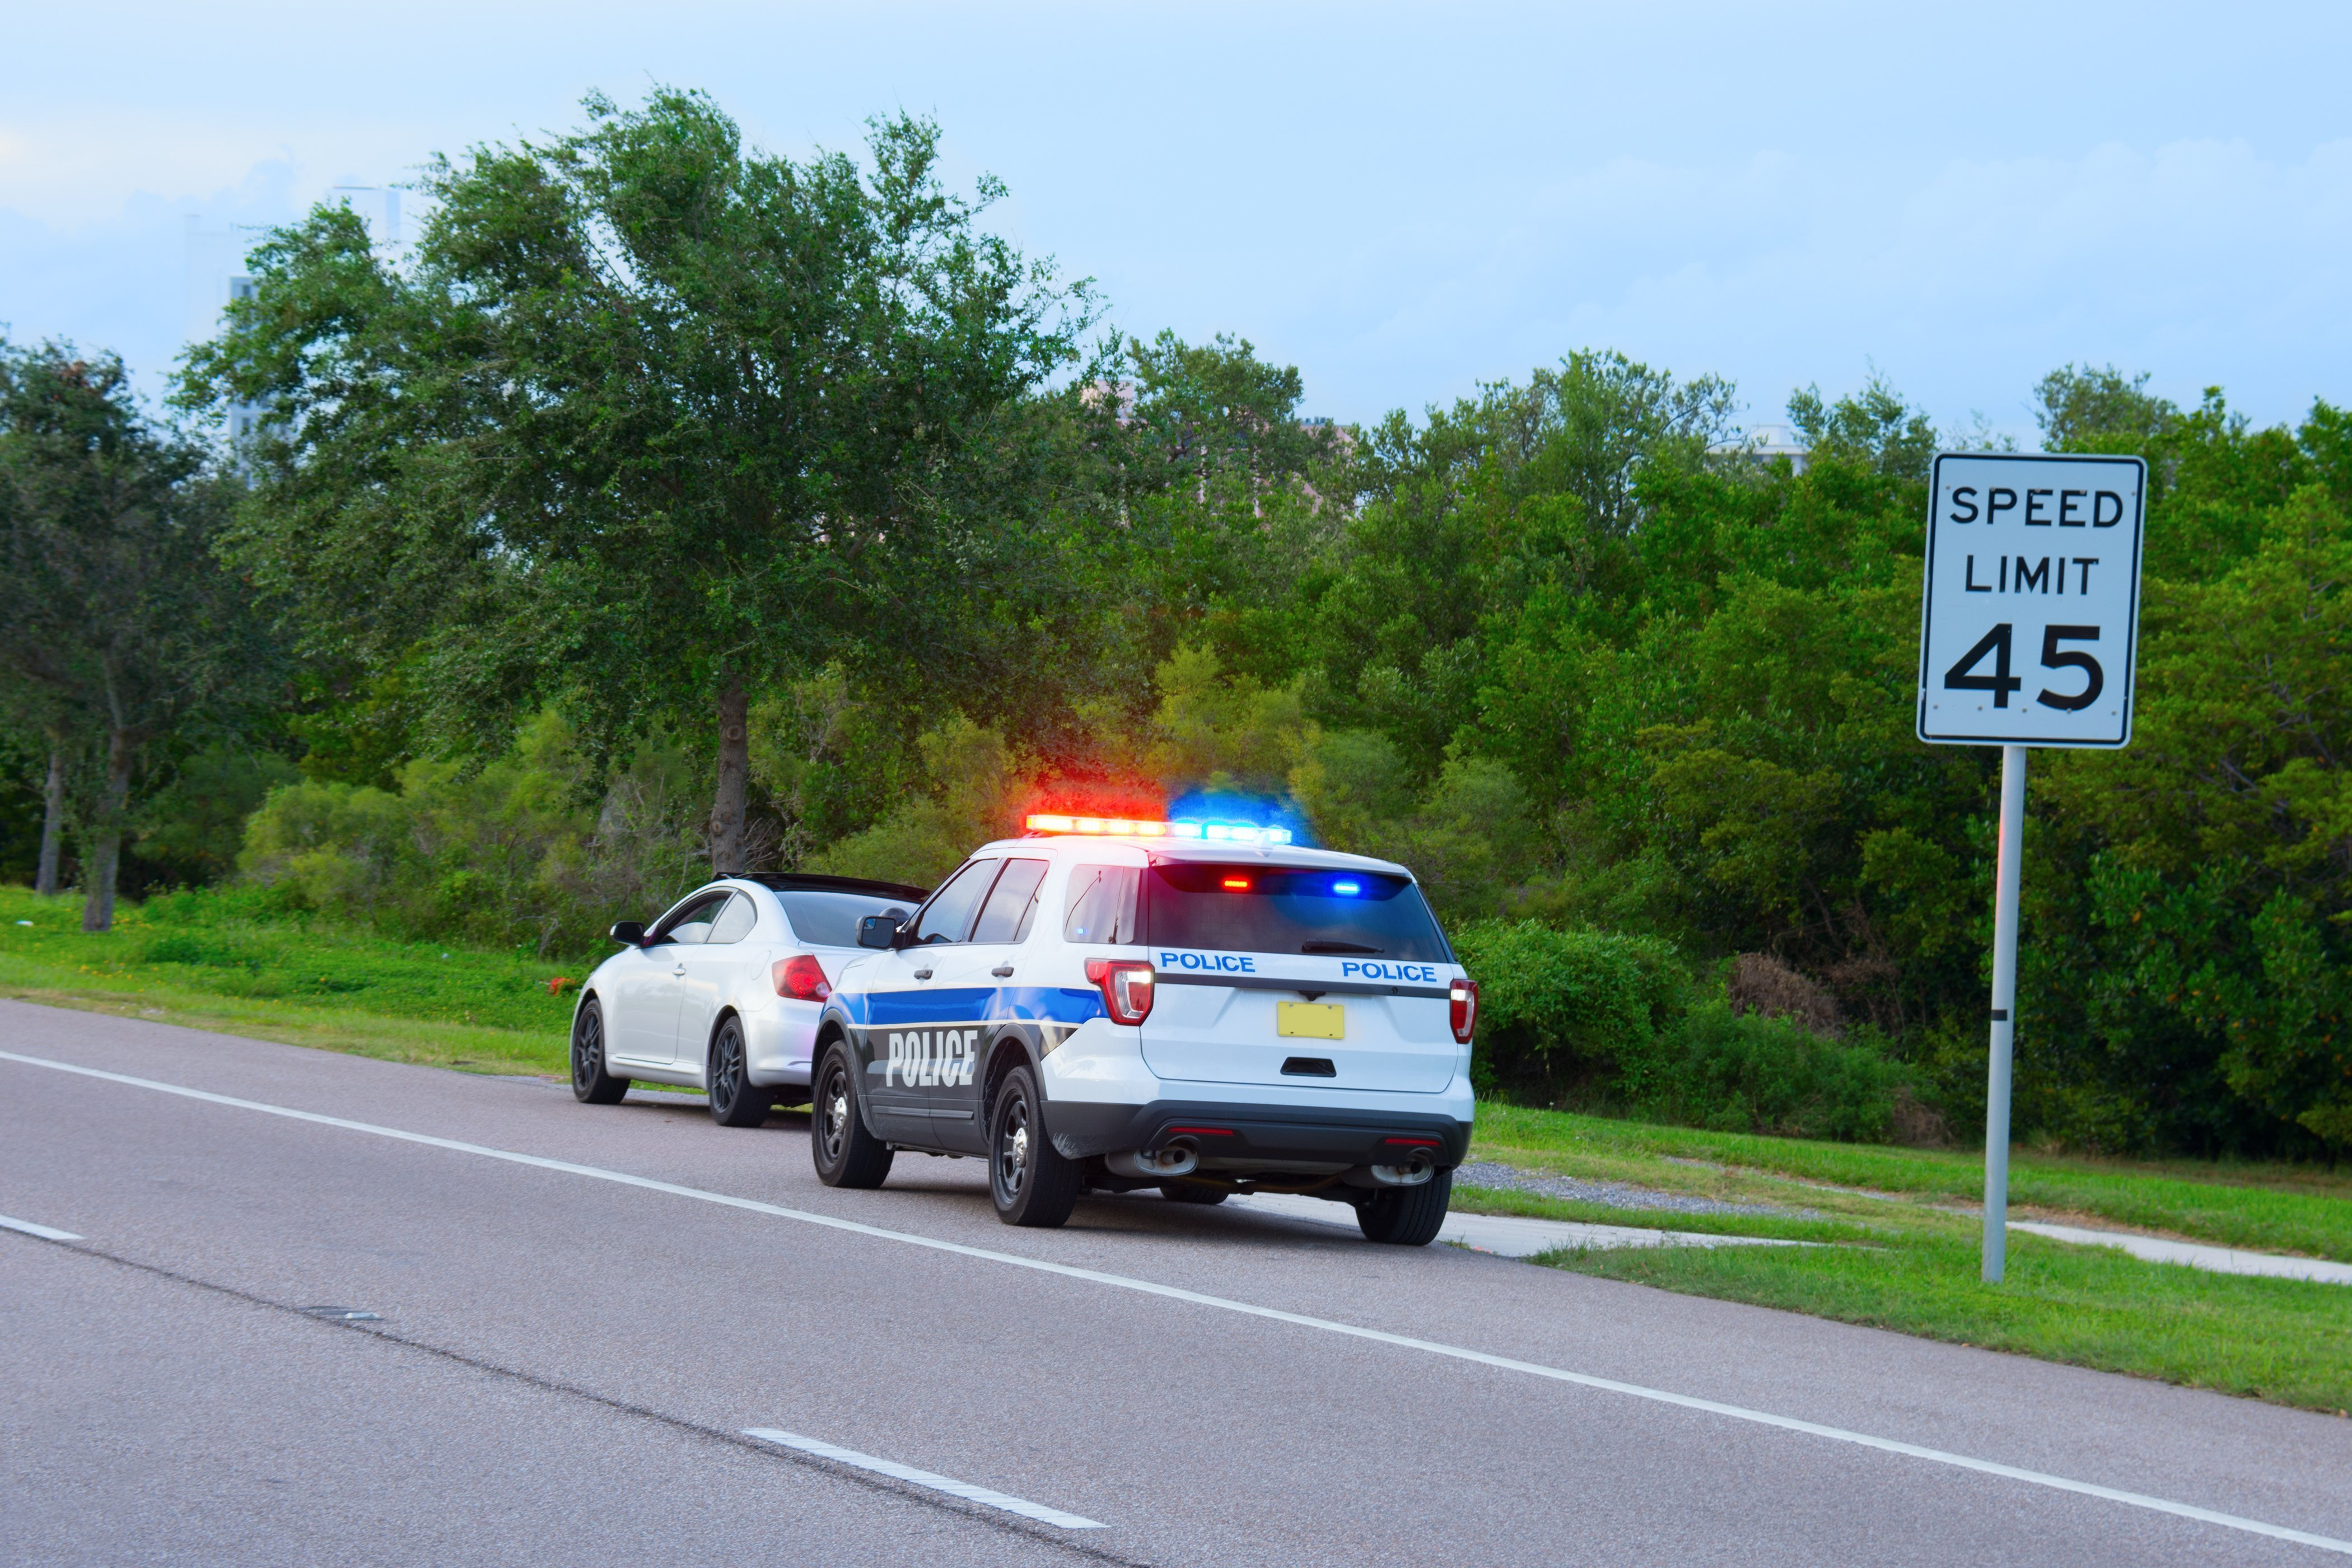 Police cars driving down a road | Photo: Shutterstock